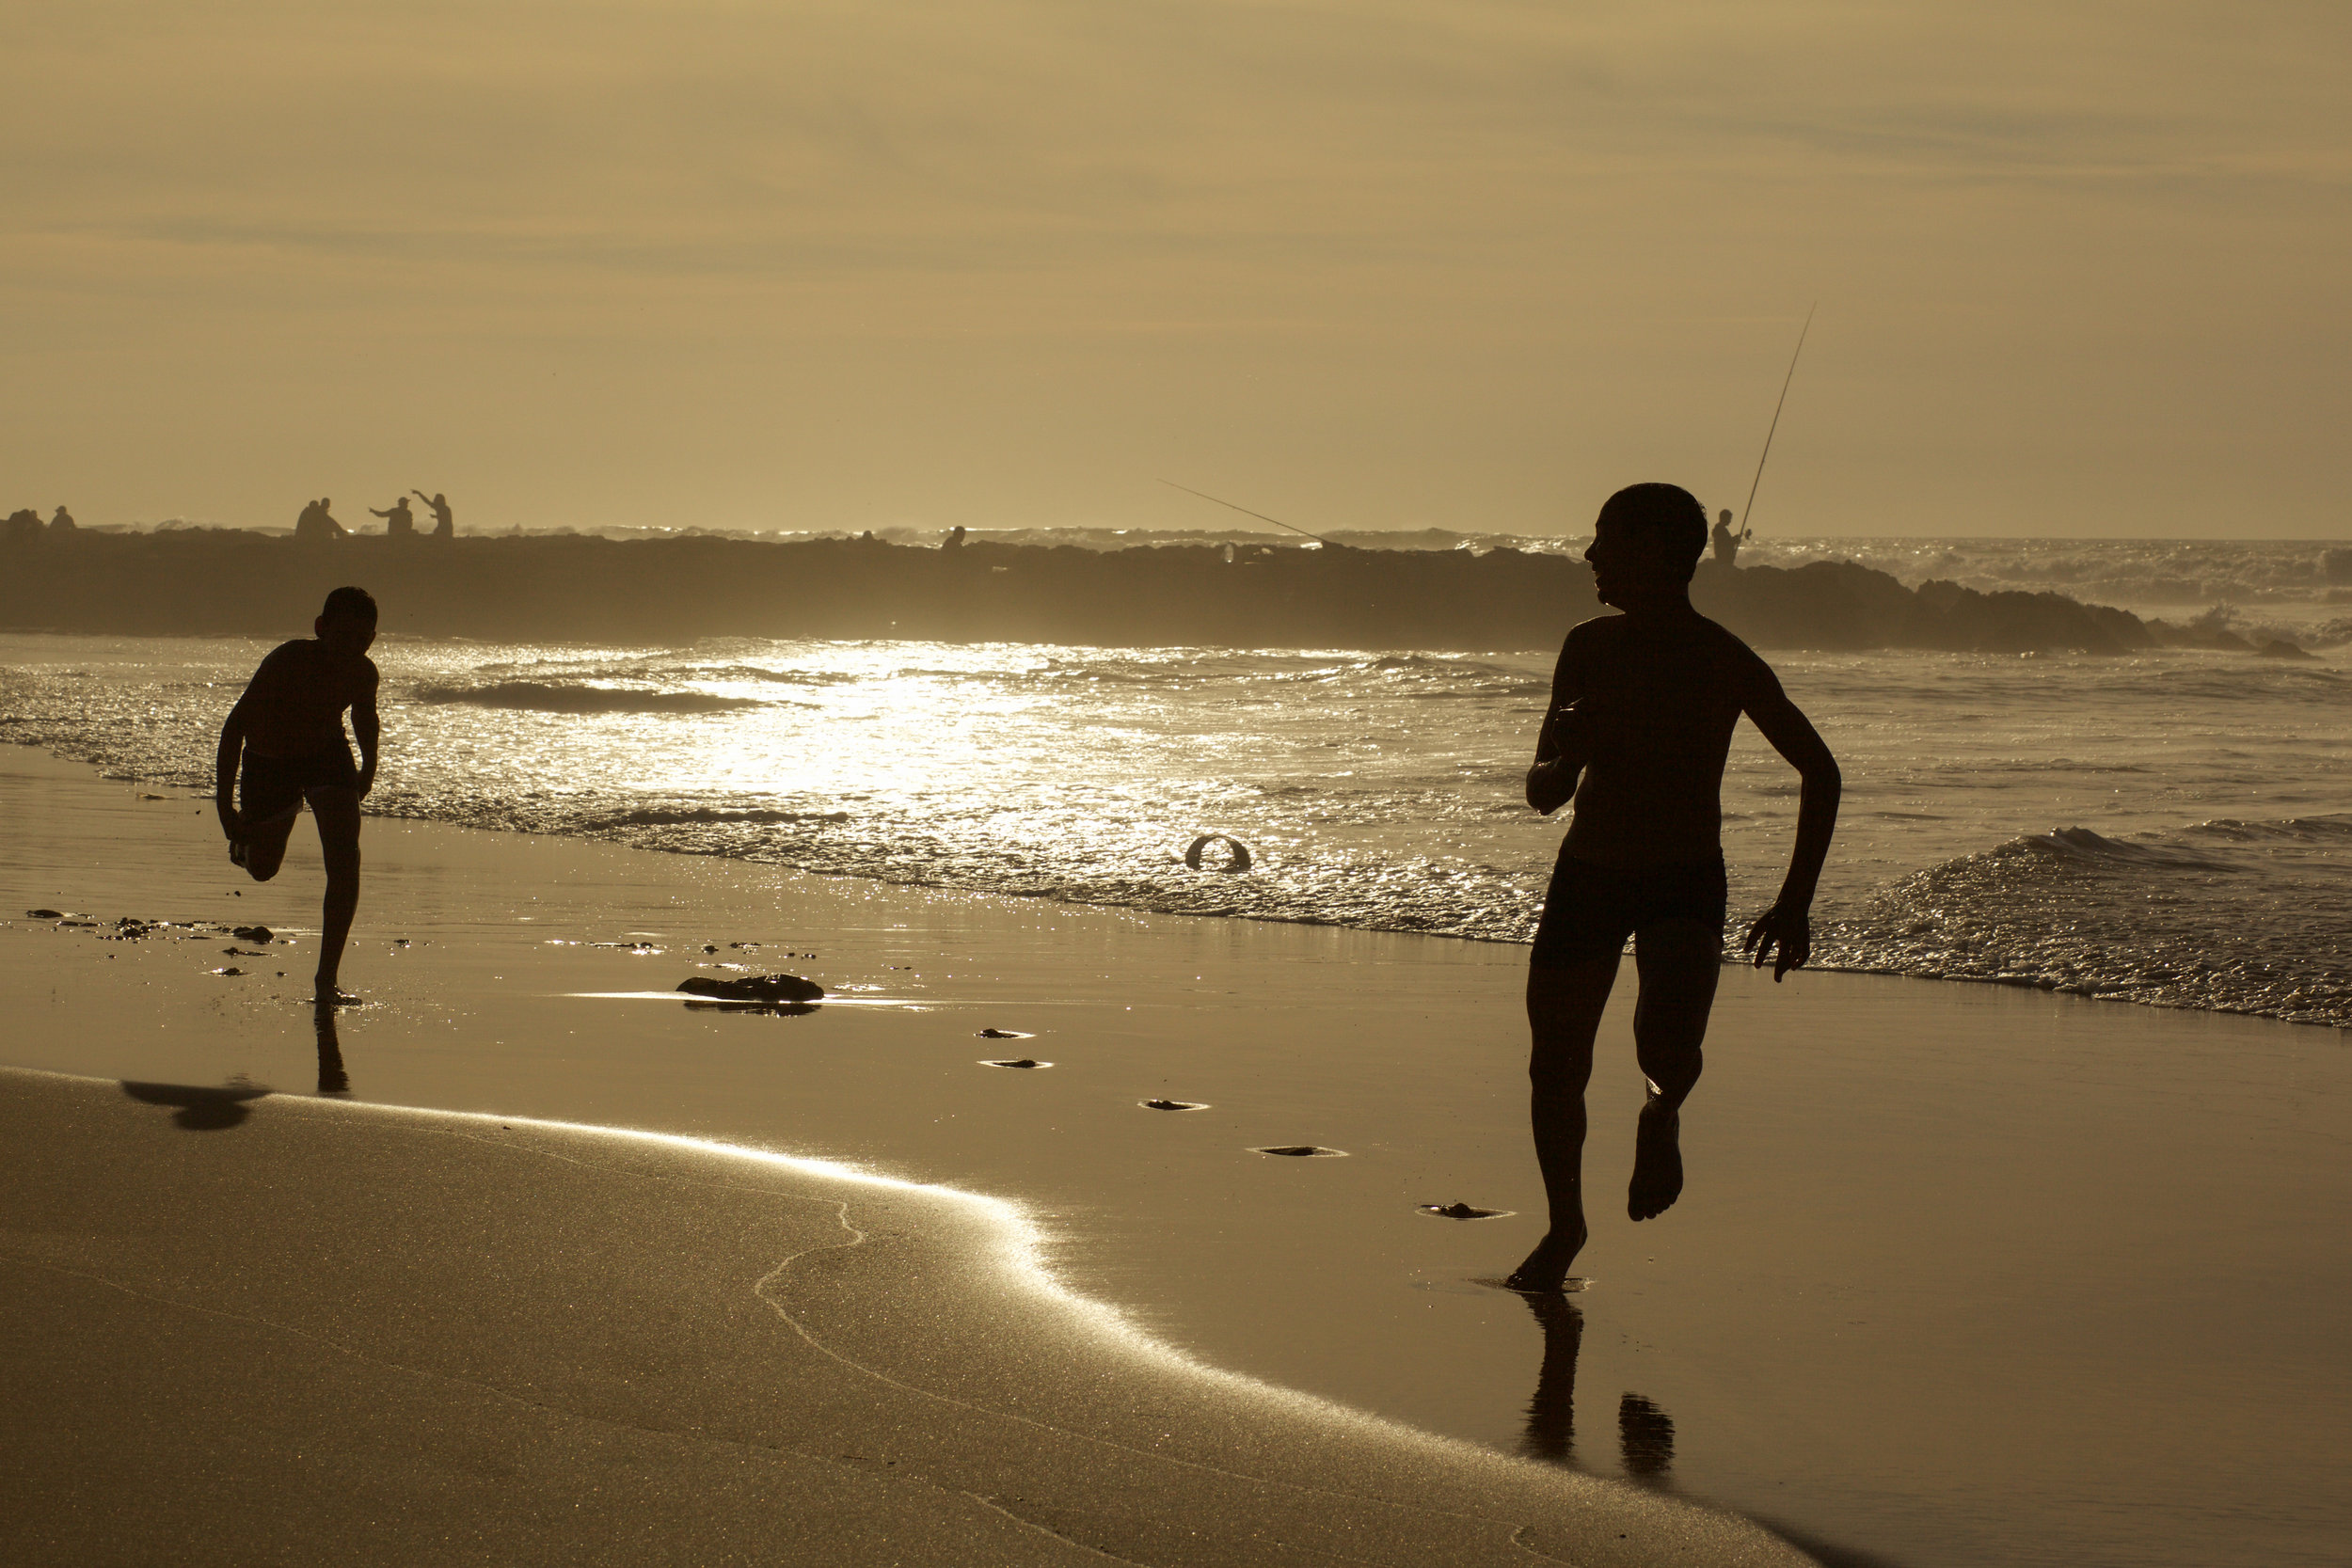 Locals playing on the beach at Casablanca while the sun sets.  A silhouette style image.